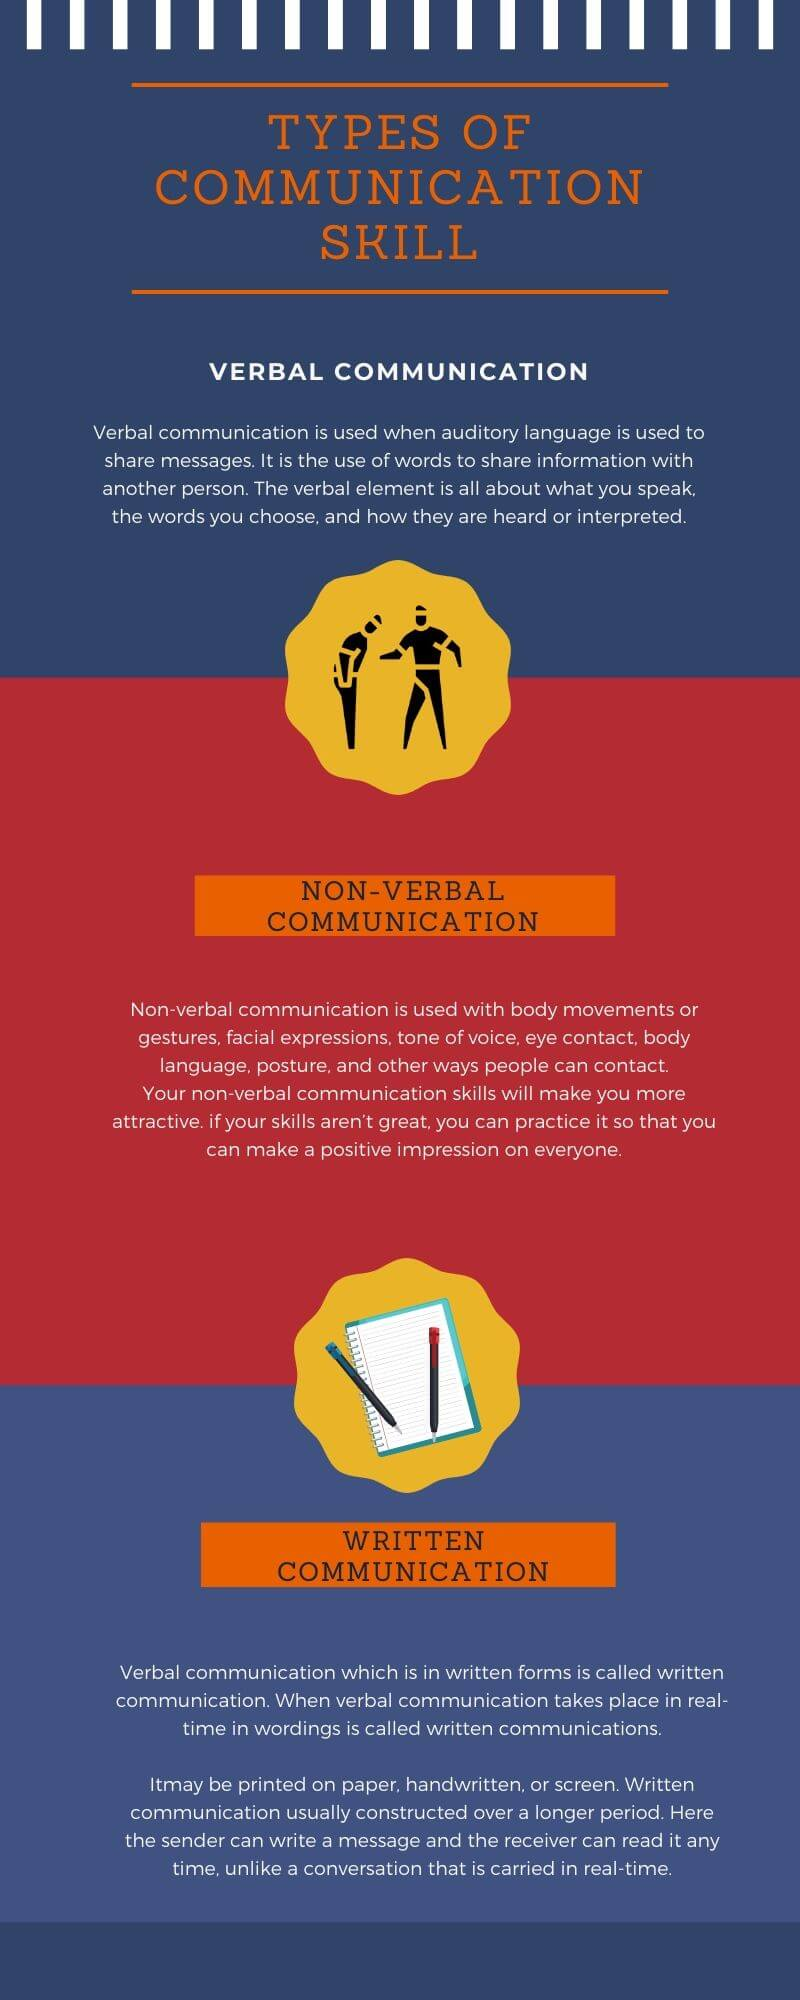 Types of Communication Skill infographic